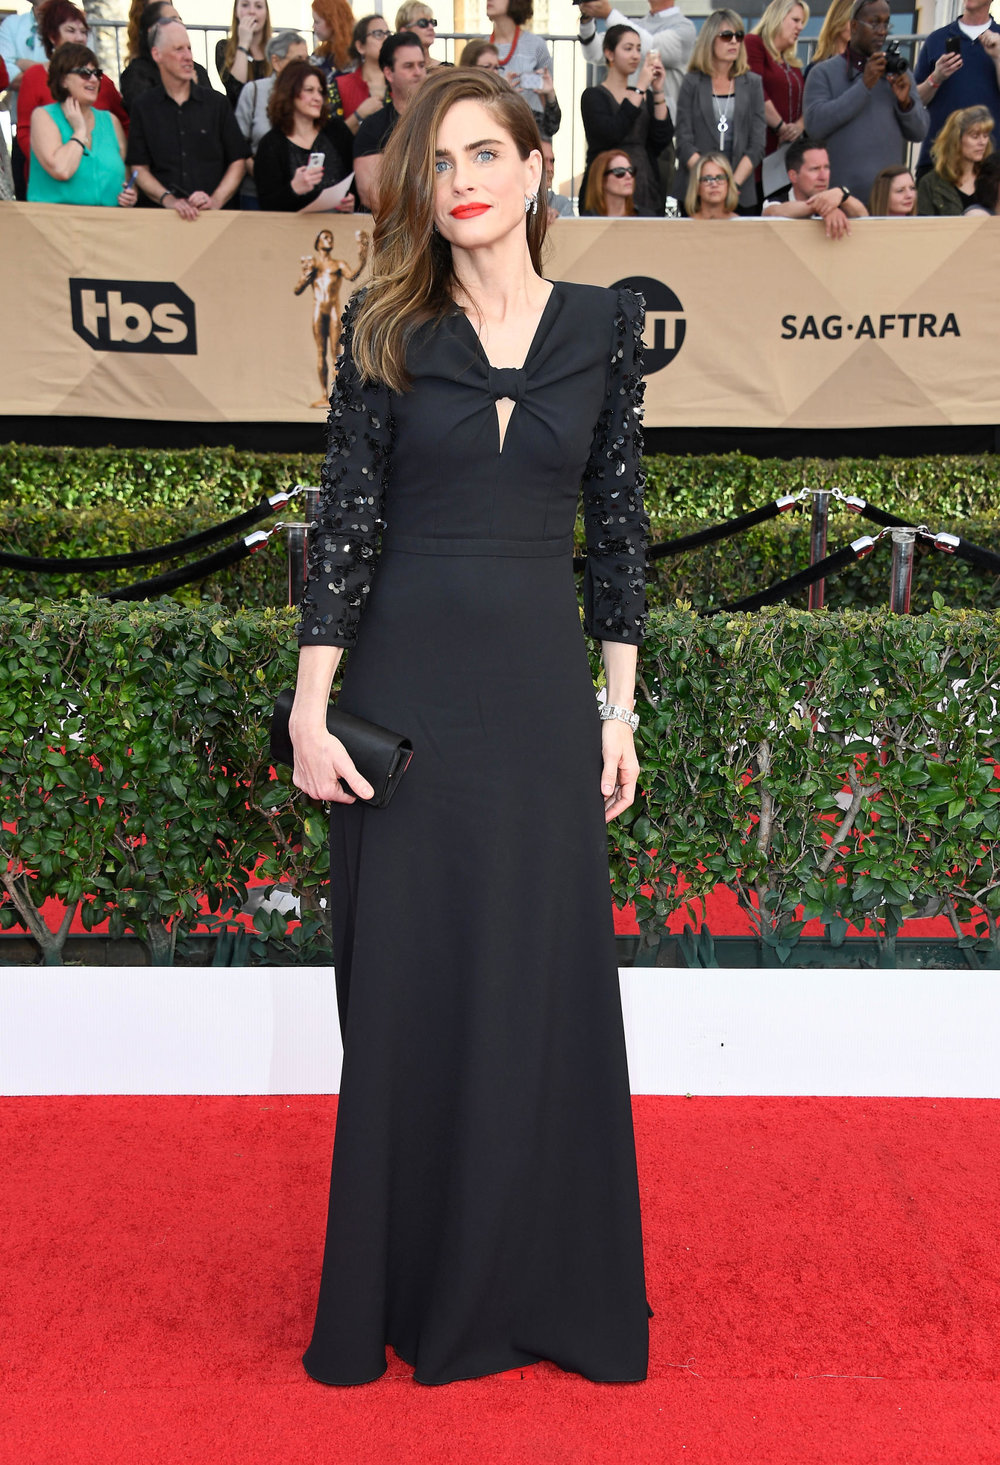 Amanda Peet in Michael Kors at the 2017 SAG Awards Photo: Frazer Harrison/Getty Images